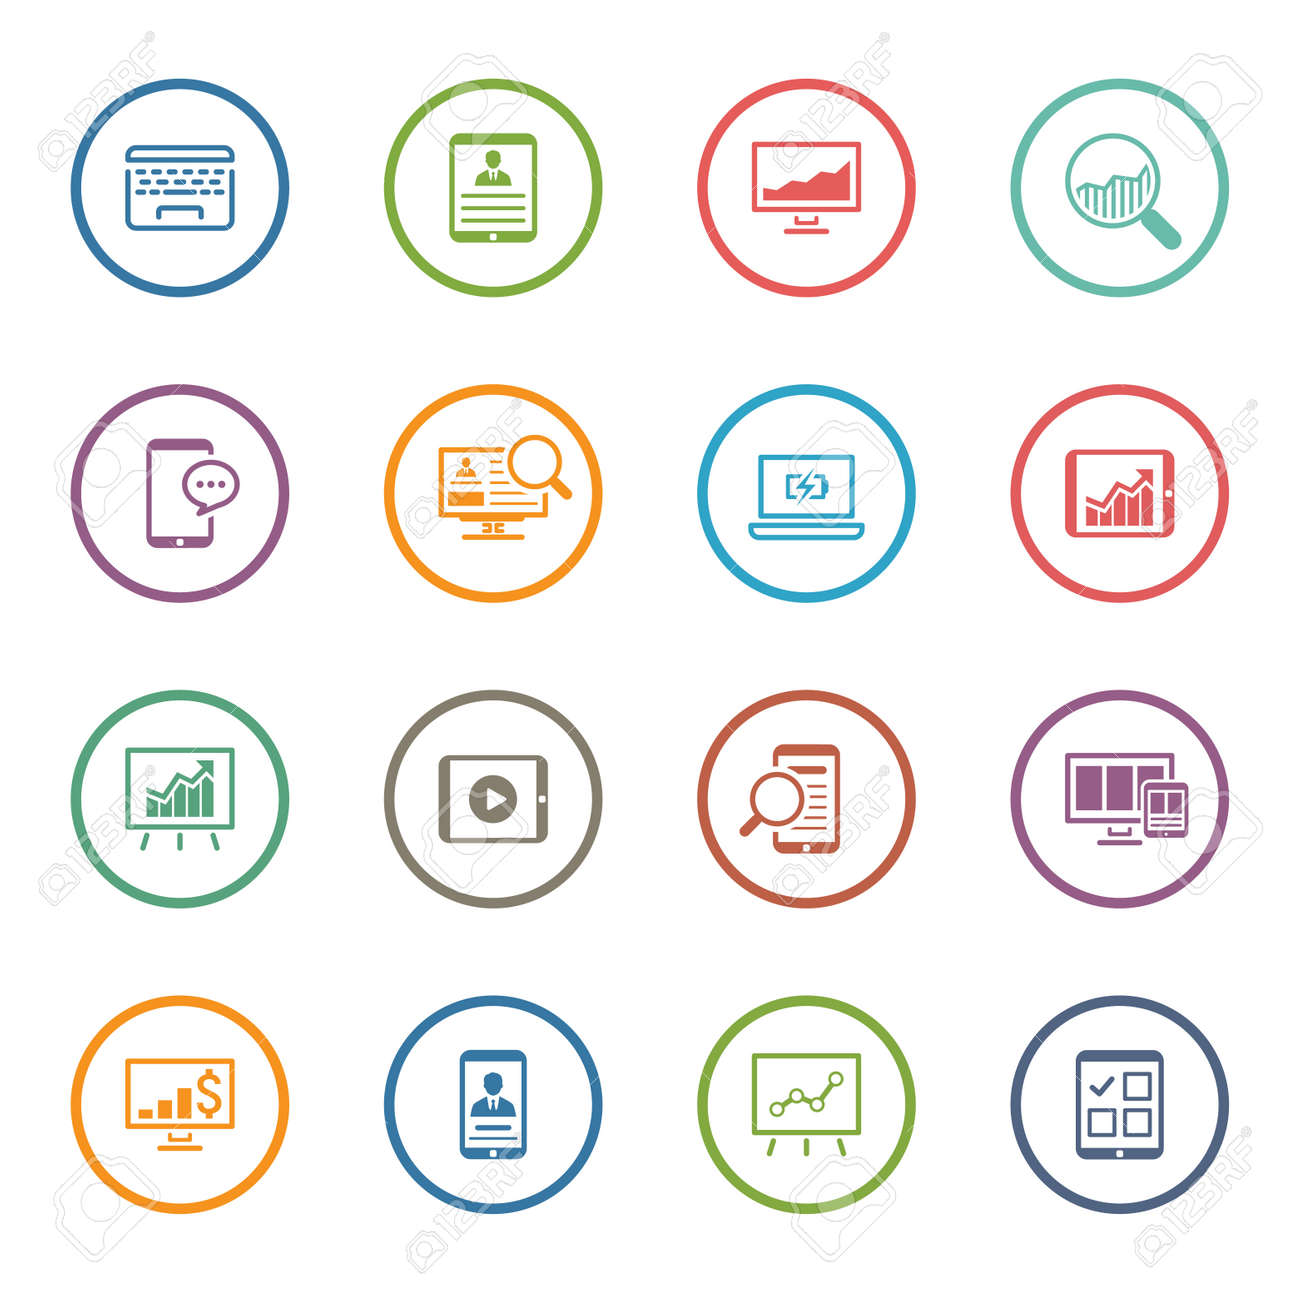 Flat Colored Business Icon Set. Isolated Illustration. - 45248668